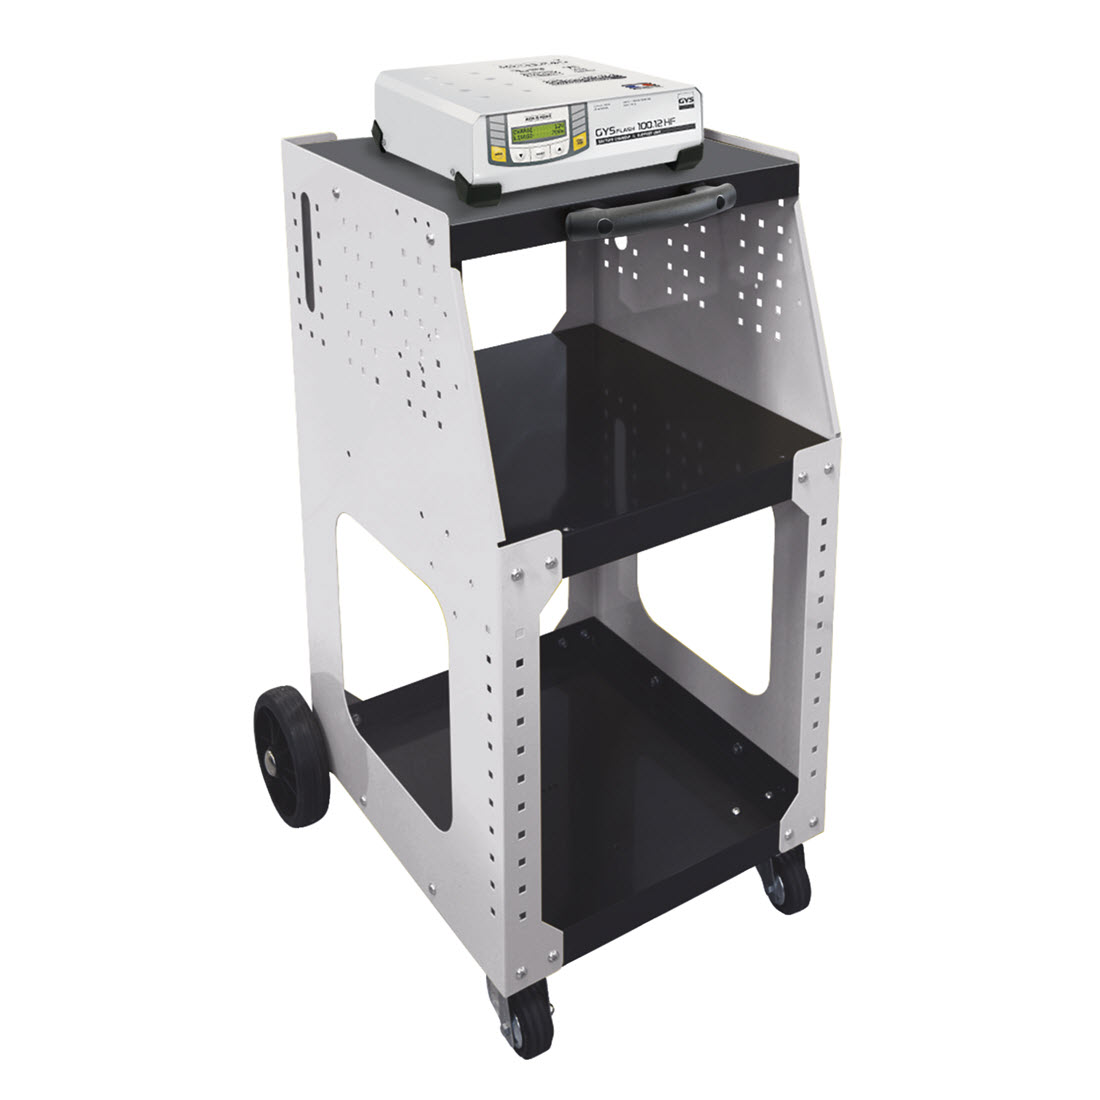 GYS Diagnostic cart